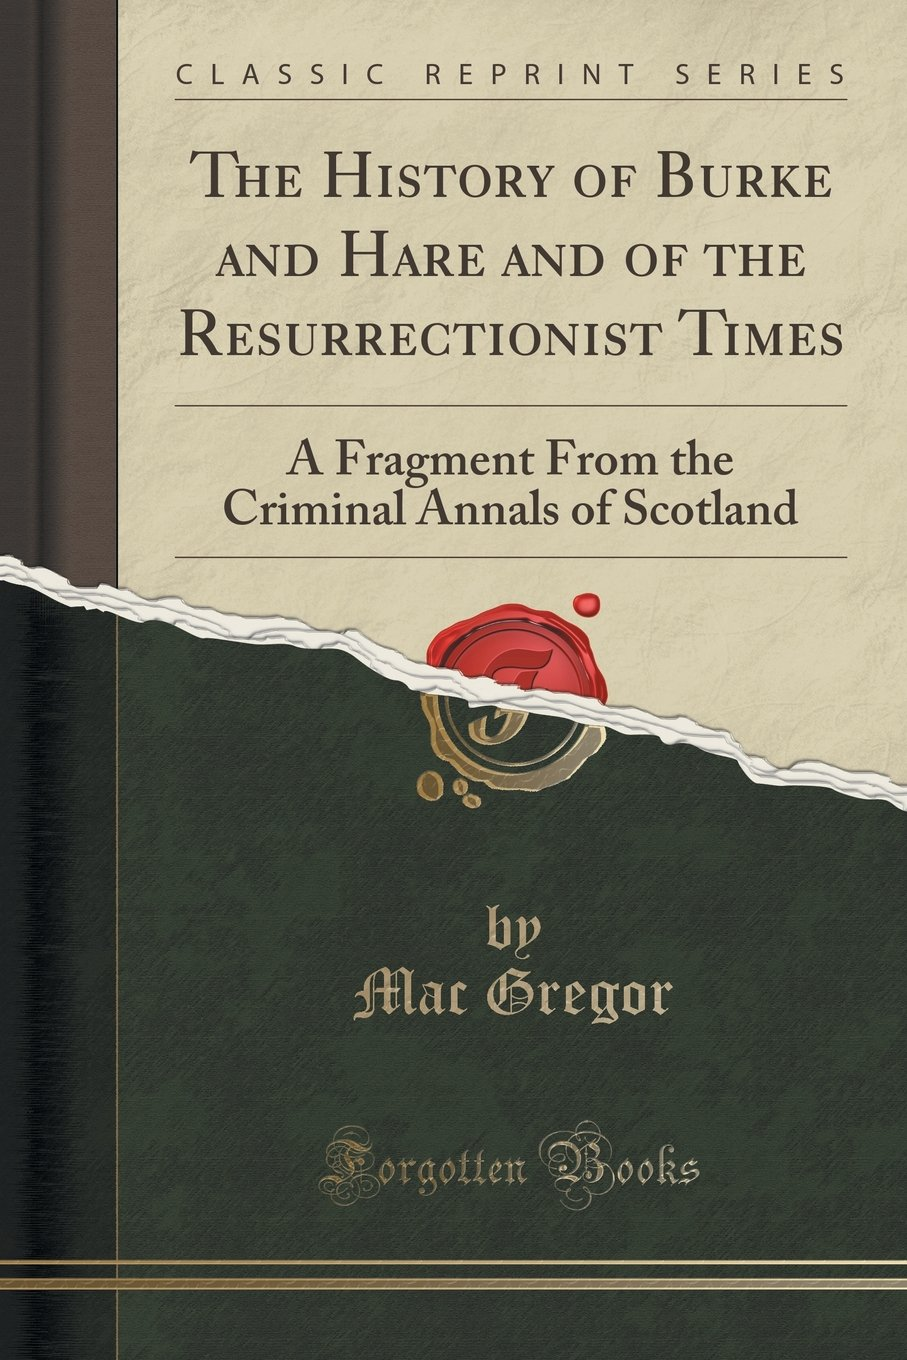 The History of Burke and Hare and of the Resurrectionist Times: A Fragment From the Criminal Annals of Scotland (Classic Reprint) pdf epub